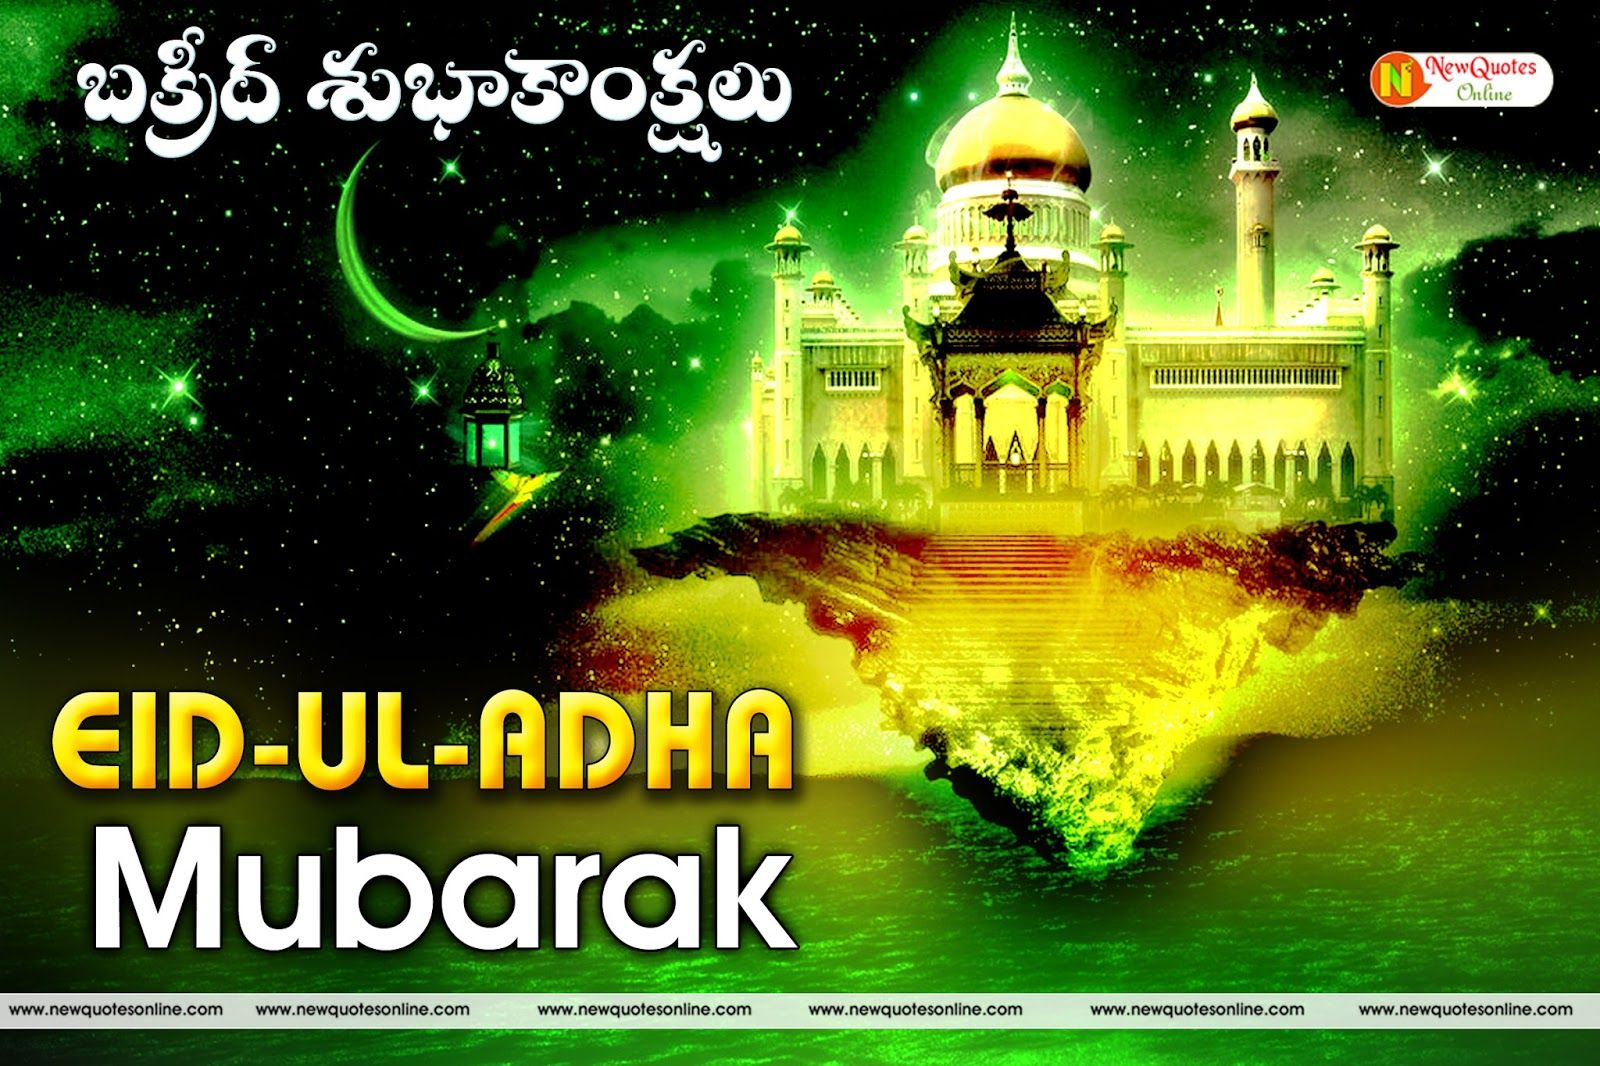 Cute Happy Eid Ul Adha Mubarak Islamic Wish Photos Images